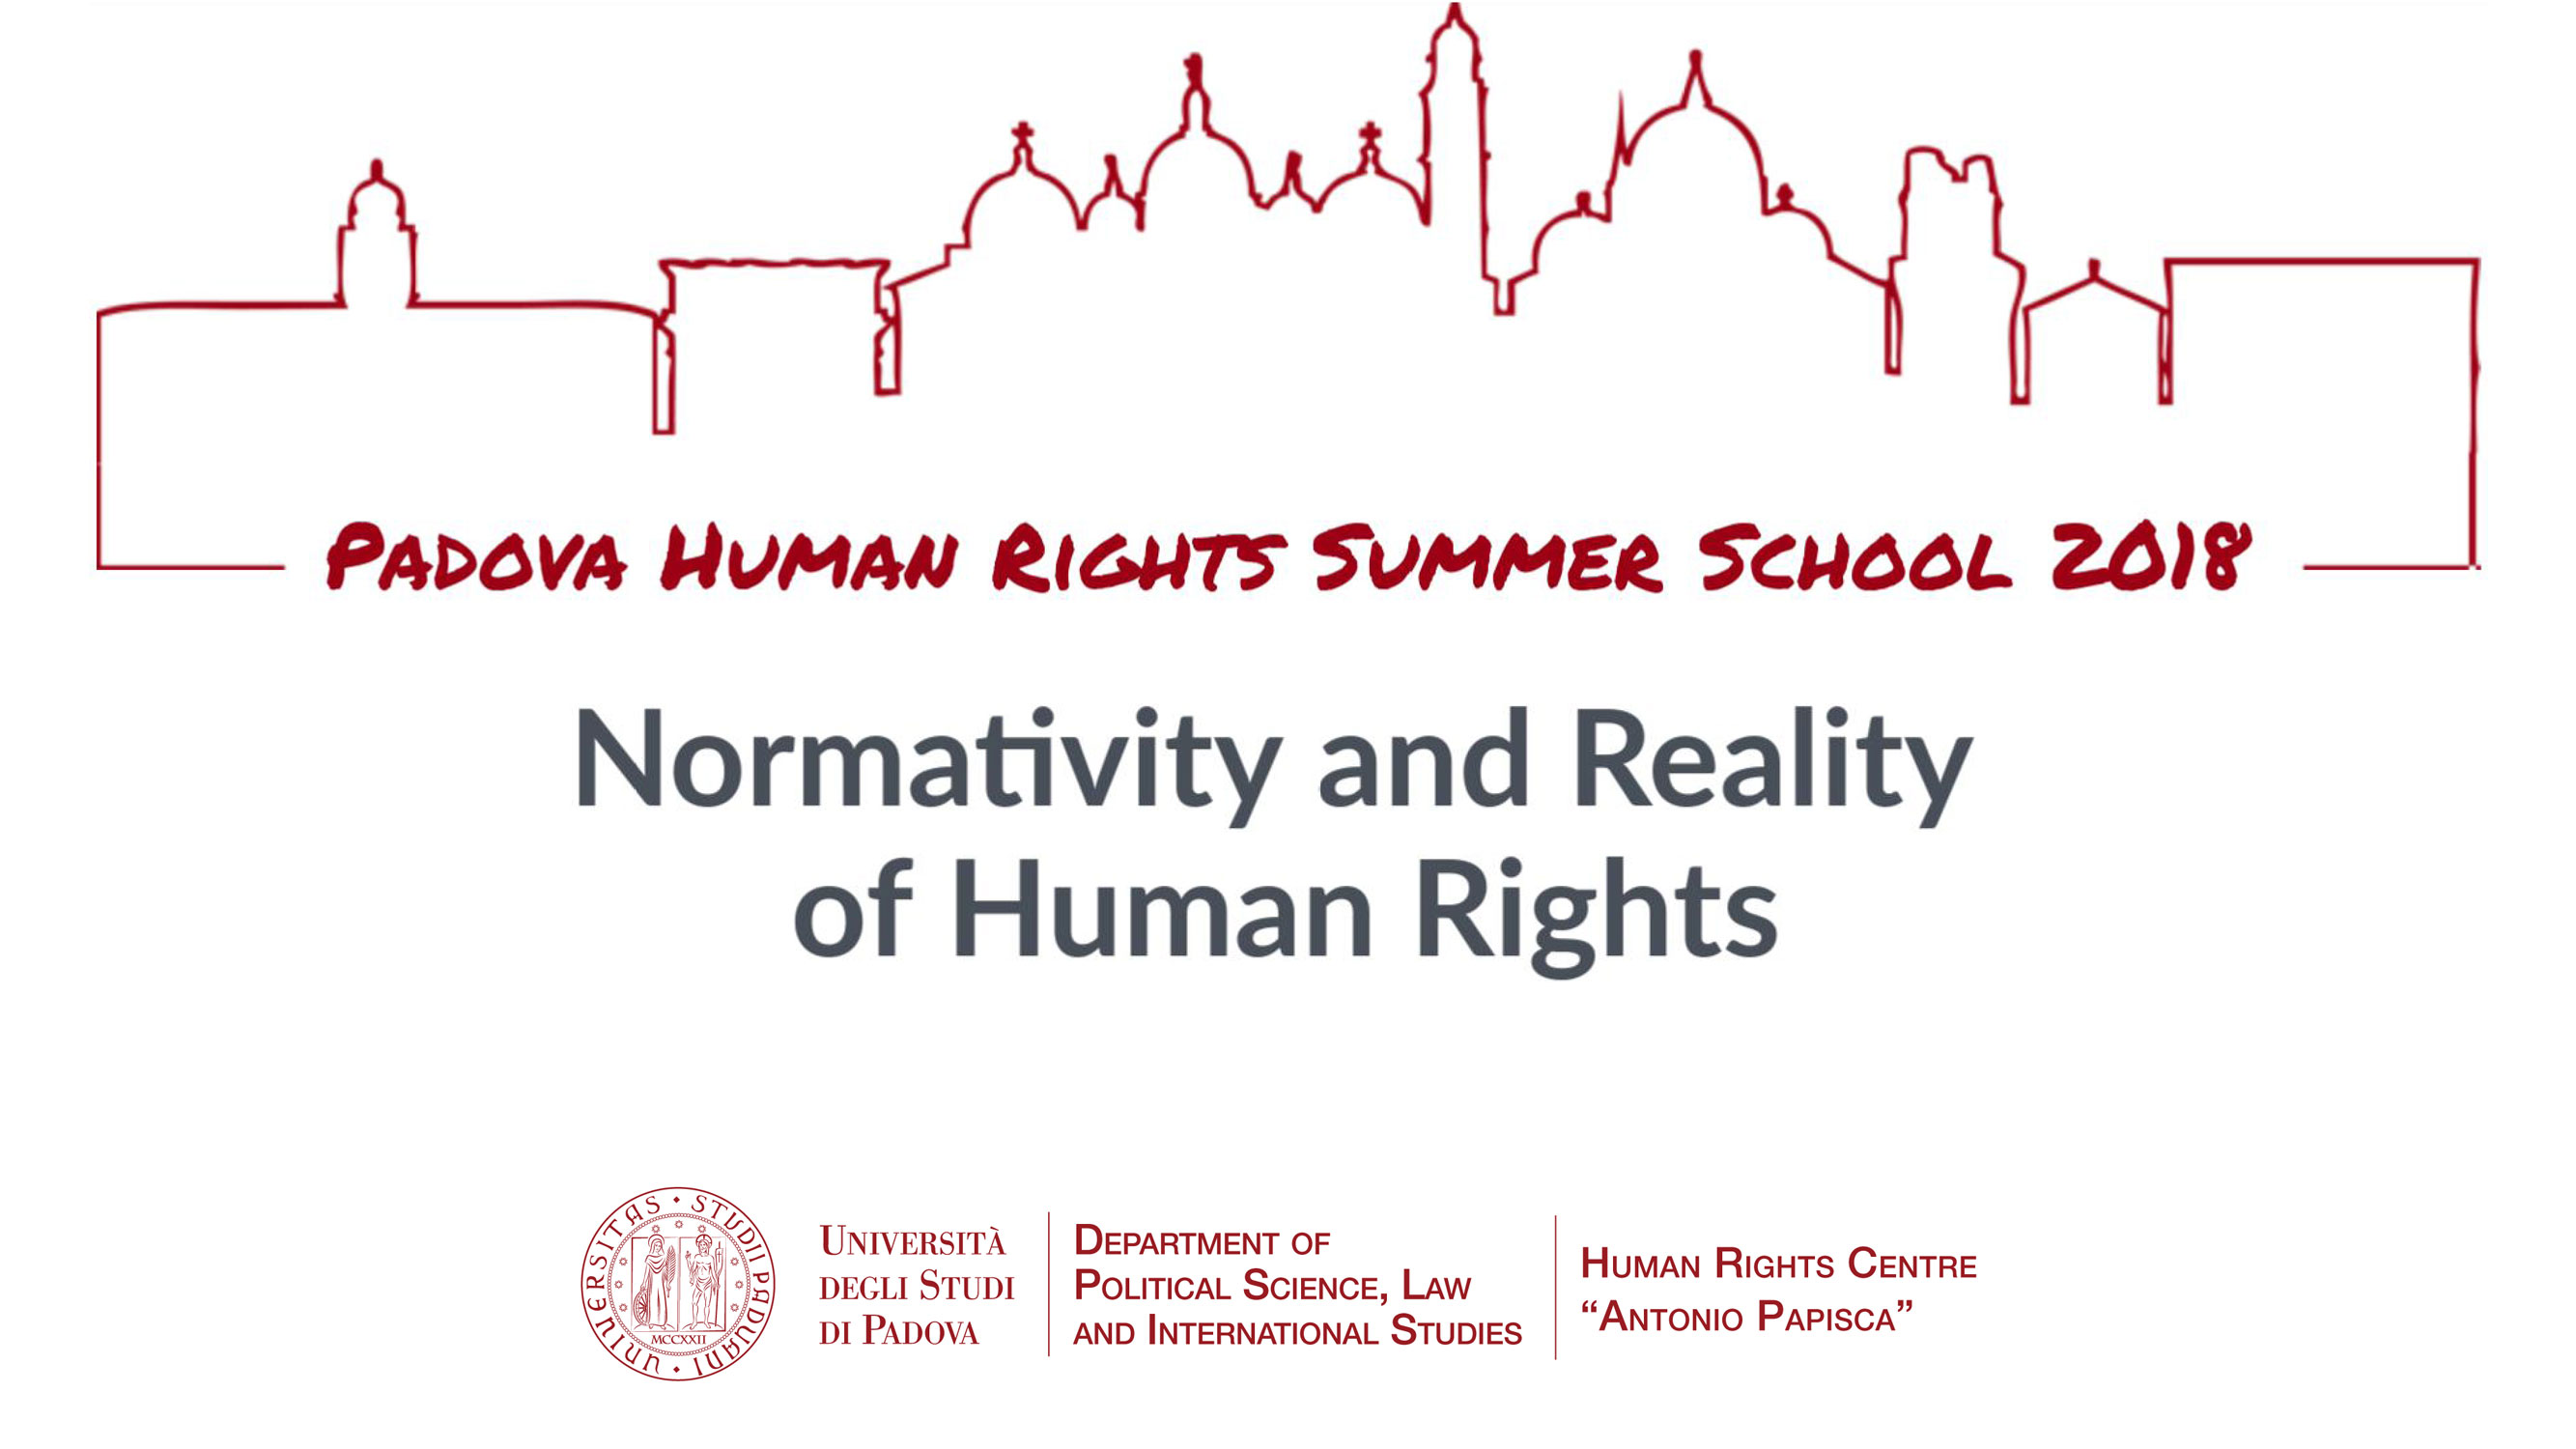 Summer school Normativity and Reality of Human Rights, Padova, July 8-14, 2018